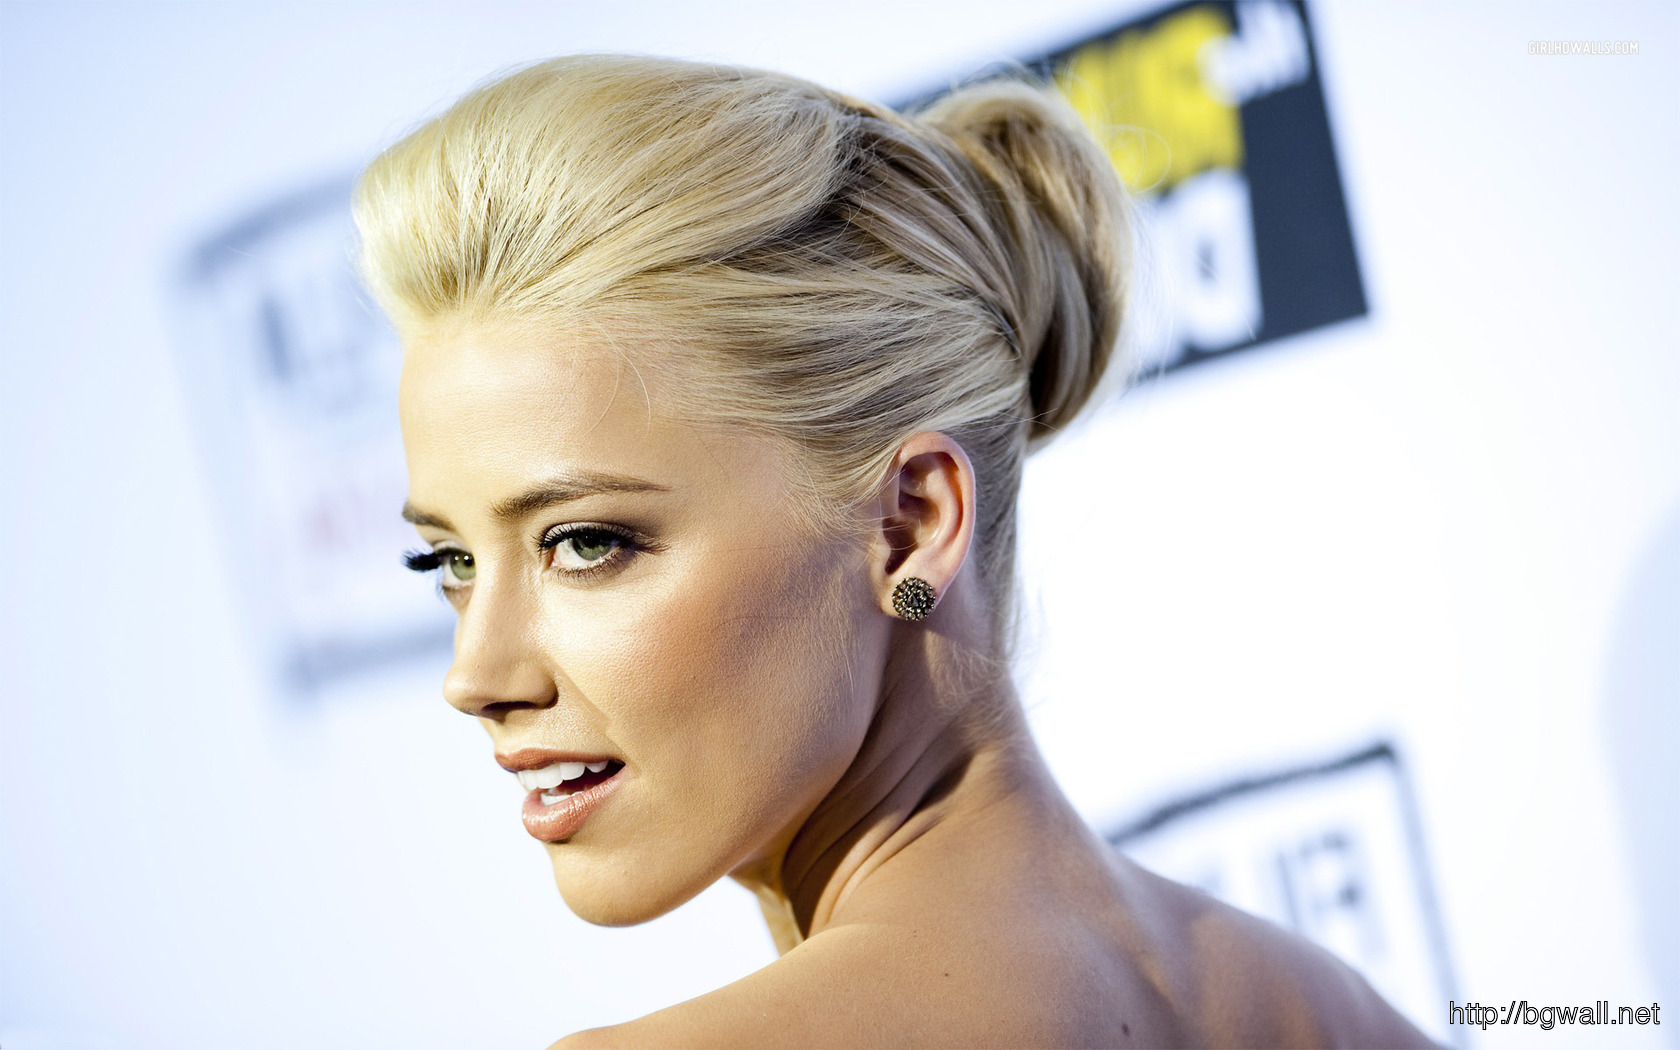 Amber Heard 1680x1050 Wallpaper Full Size